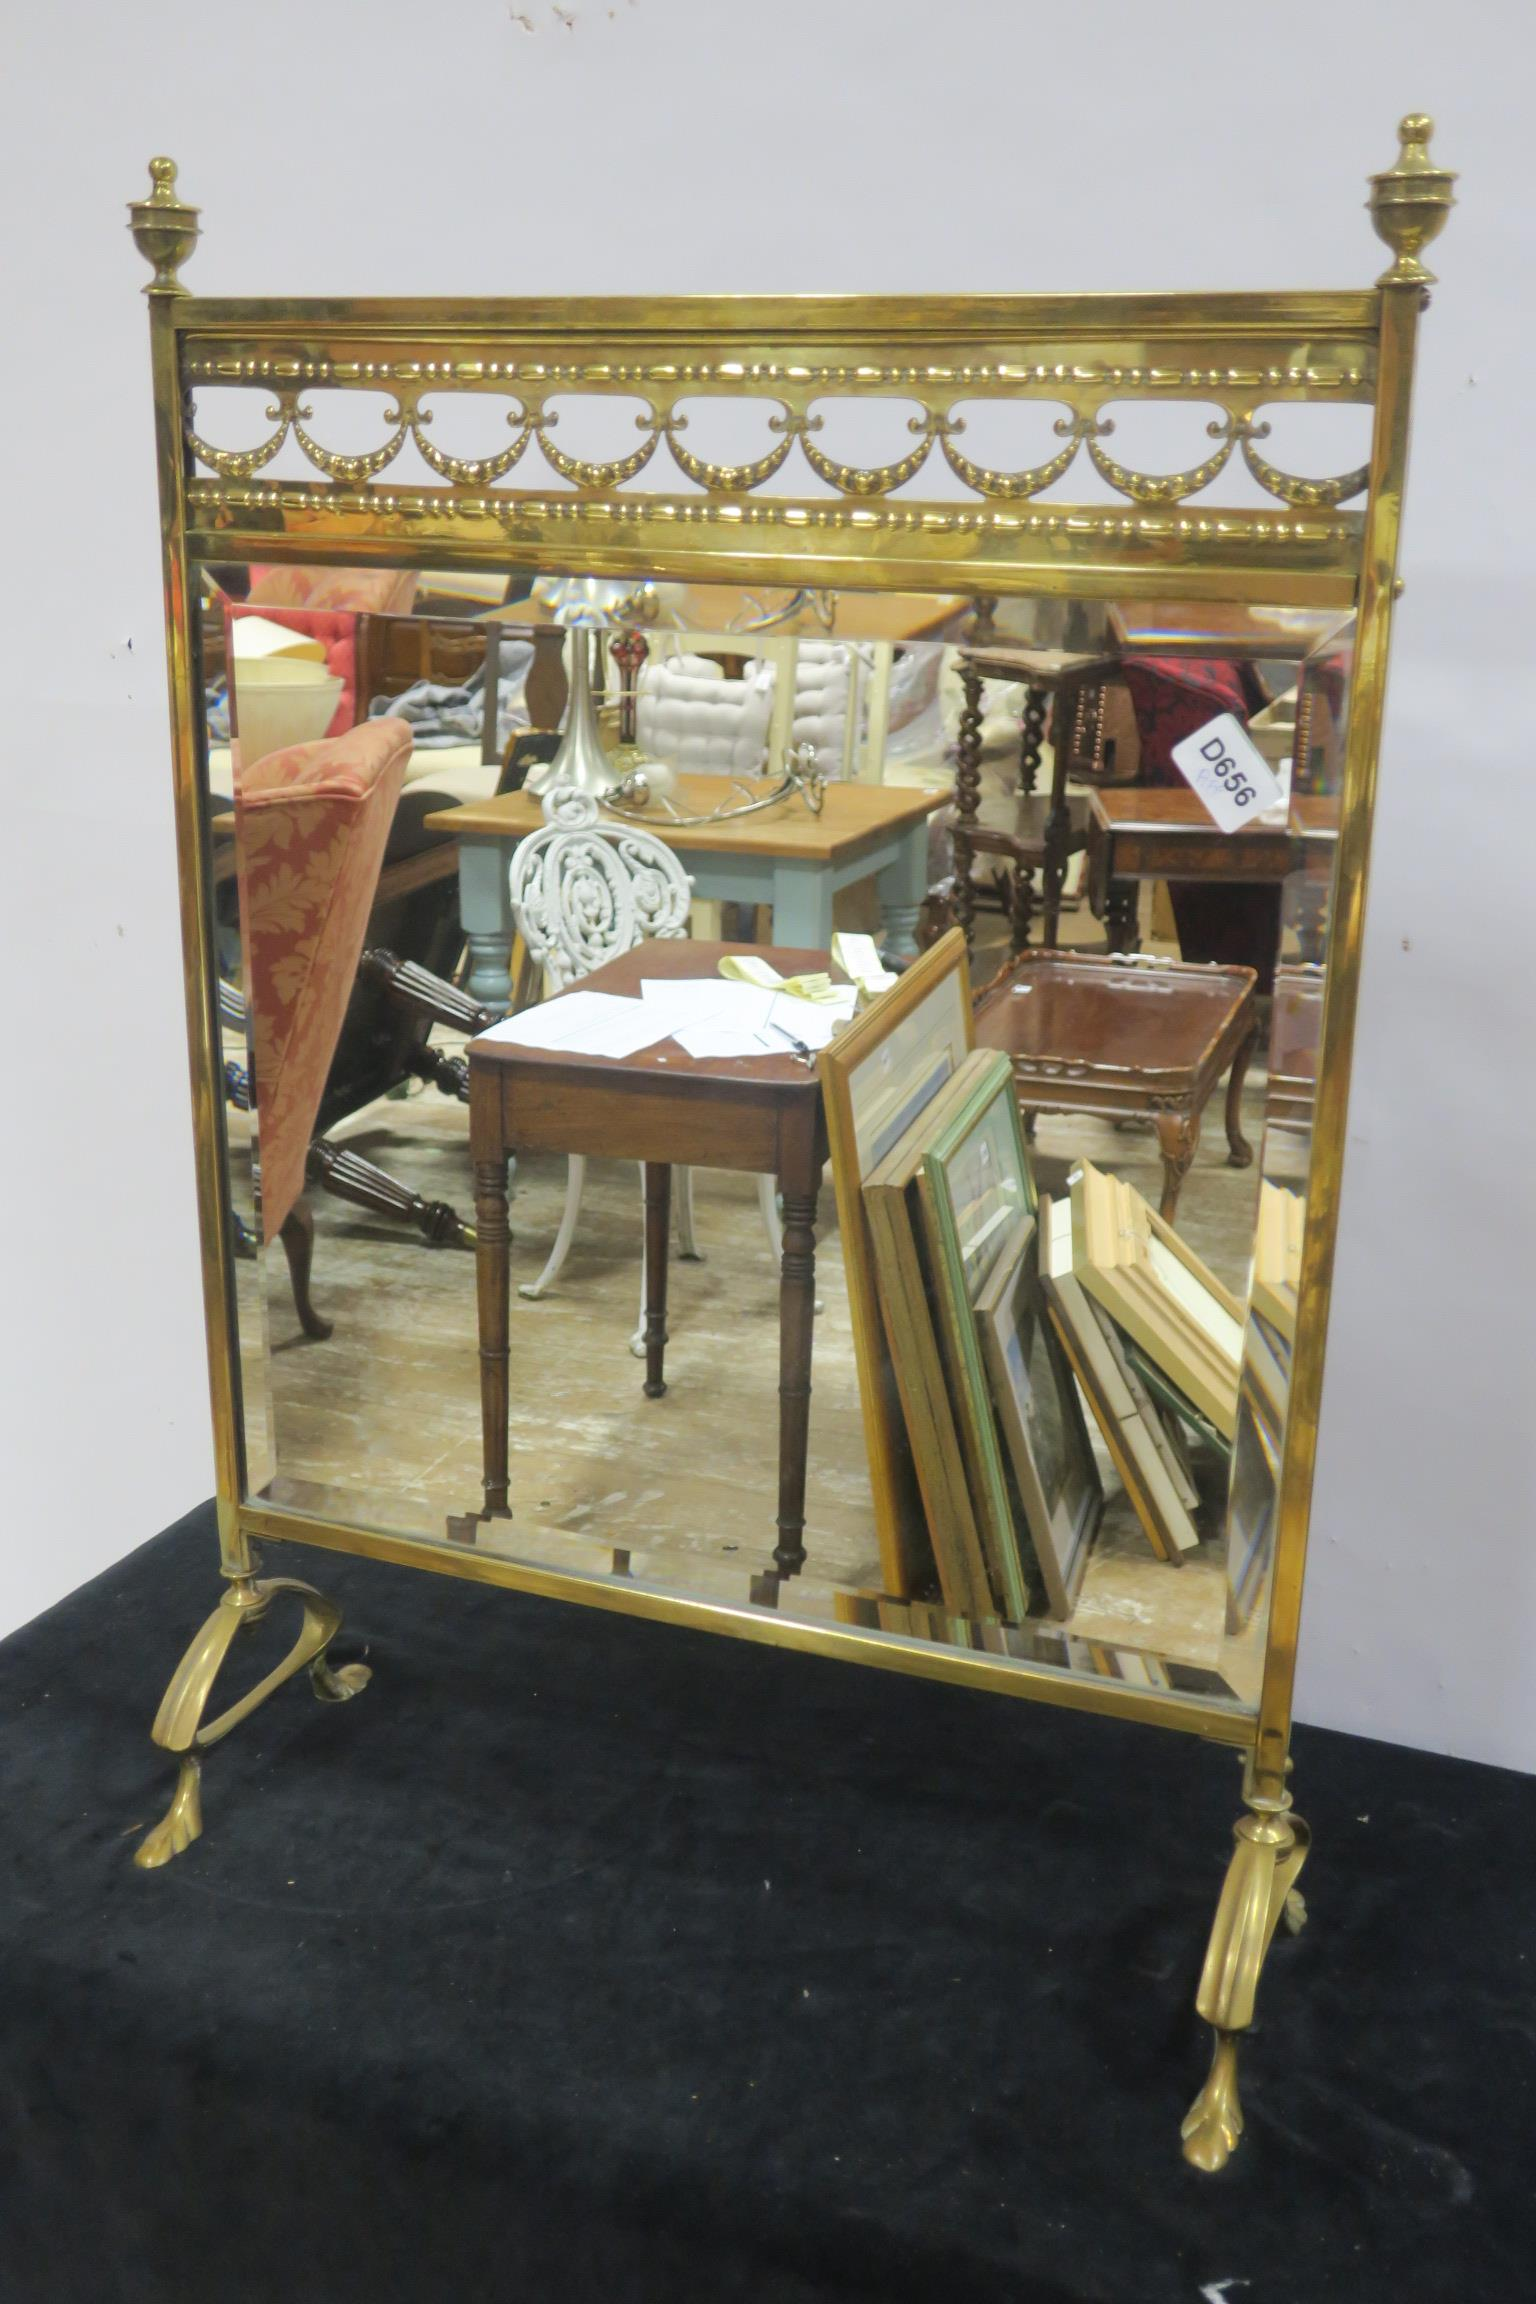 Lot 442 - A 19TH CENTURY BRASS FIRE SCREEN the rectangular bevelled glass plate with pierced cresting and urn